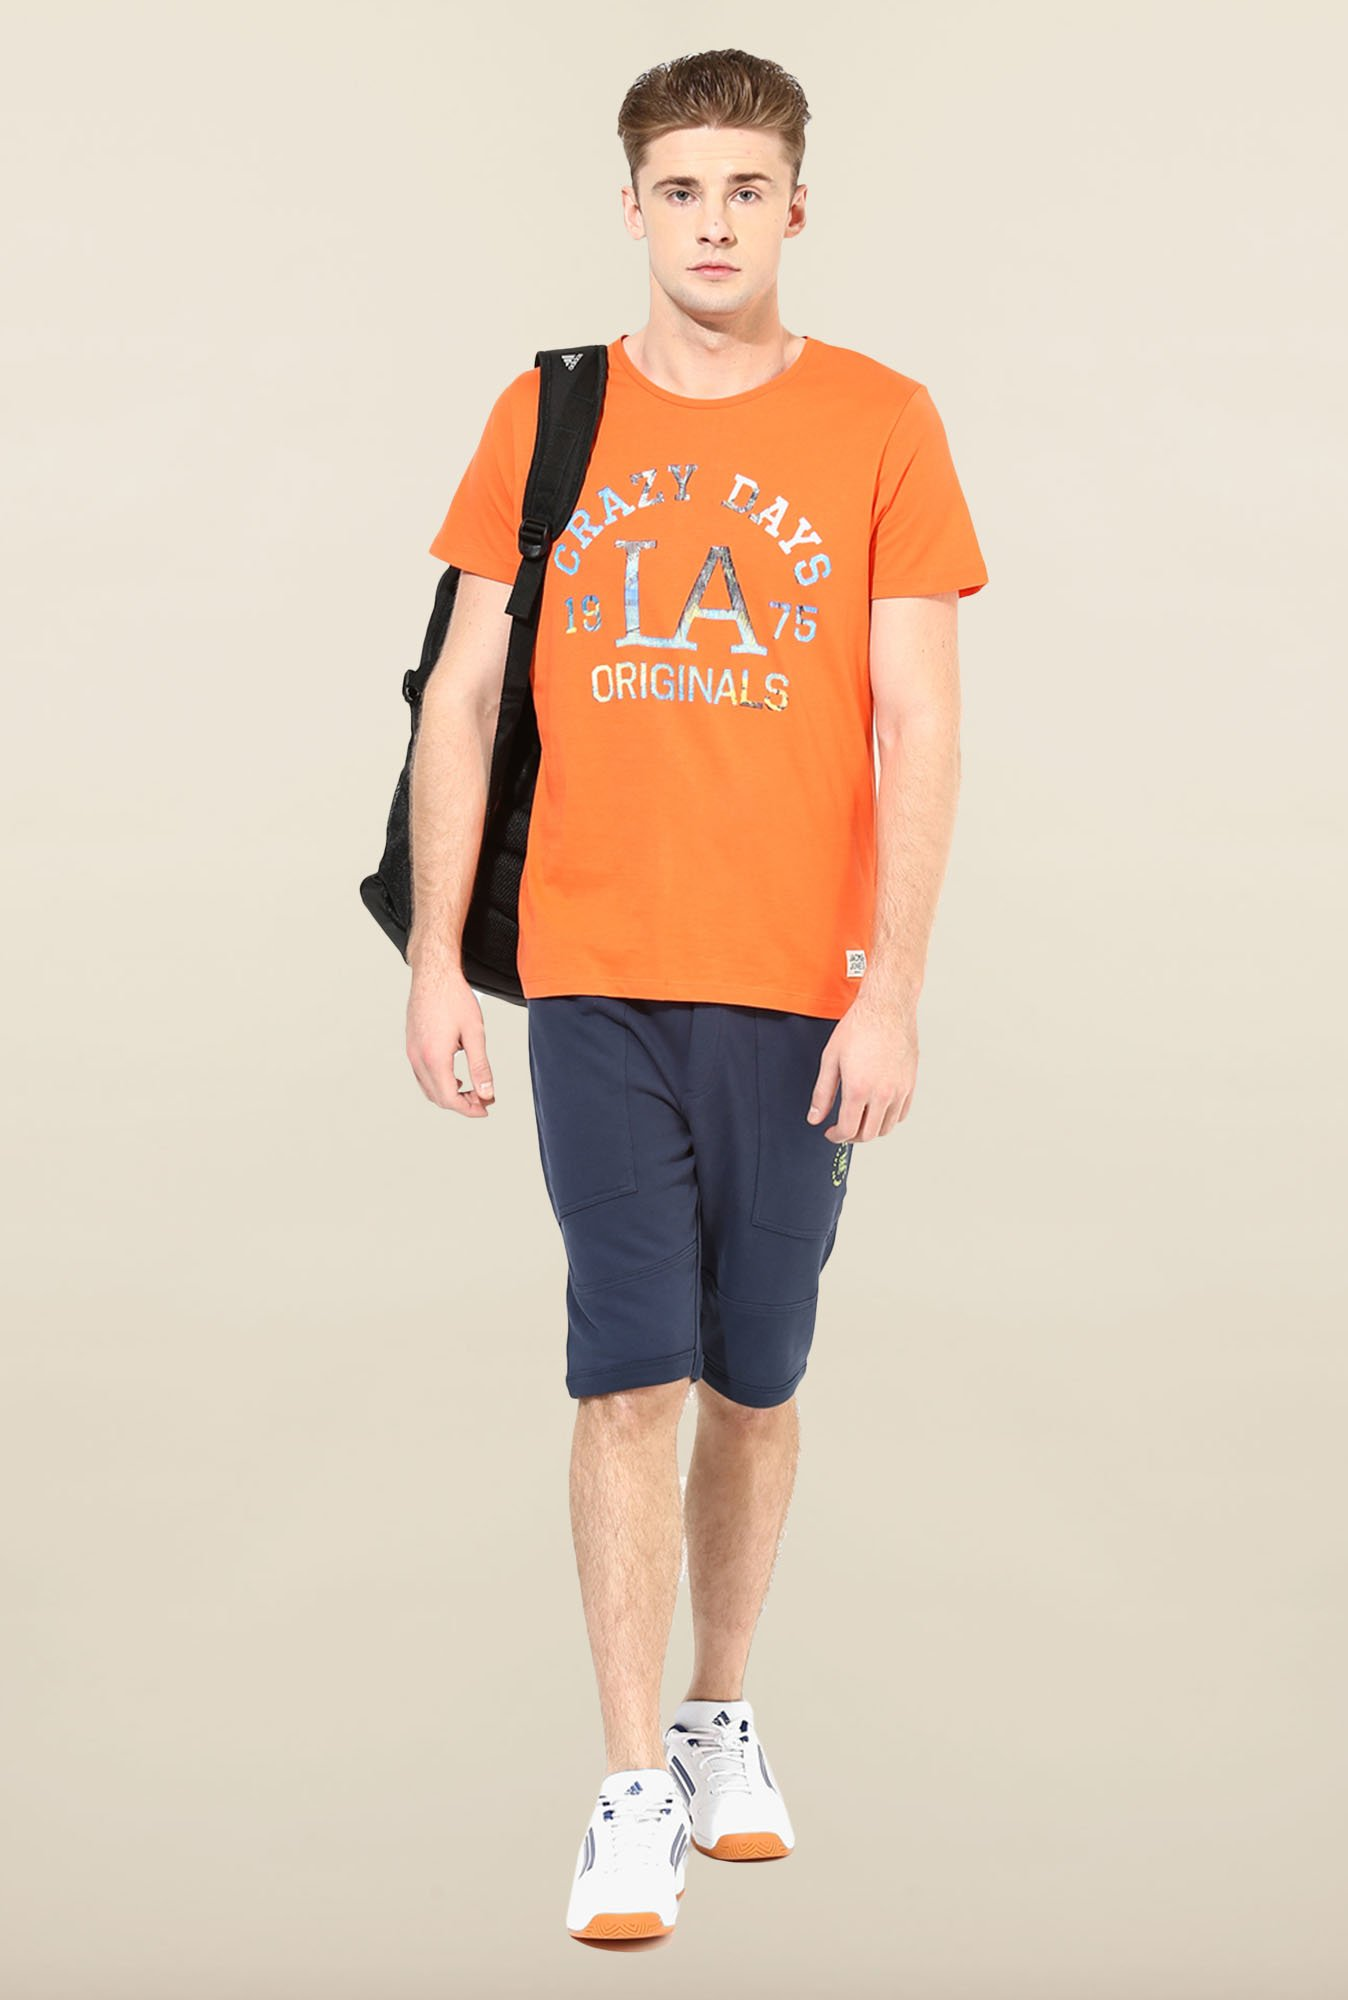 Jack & Jones Orange Printed T-Shirt